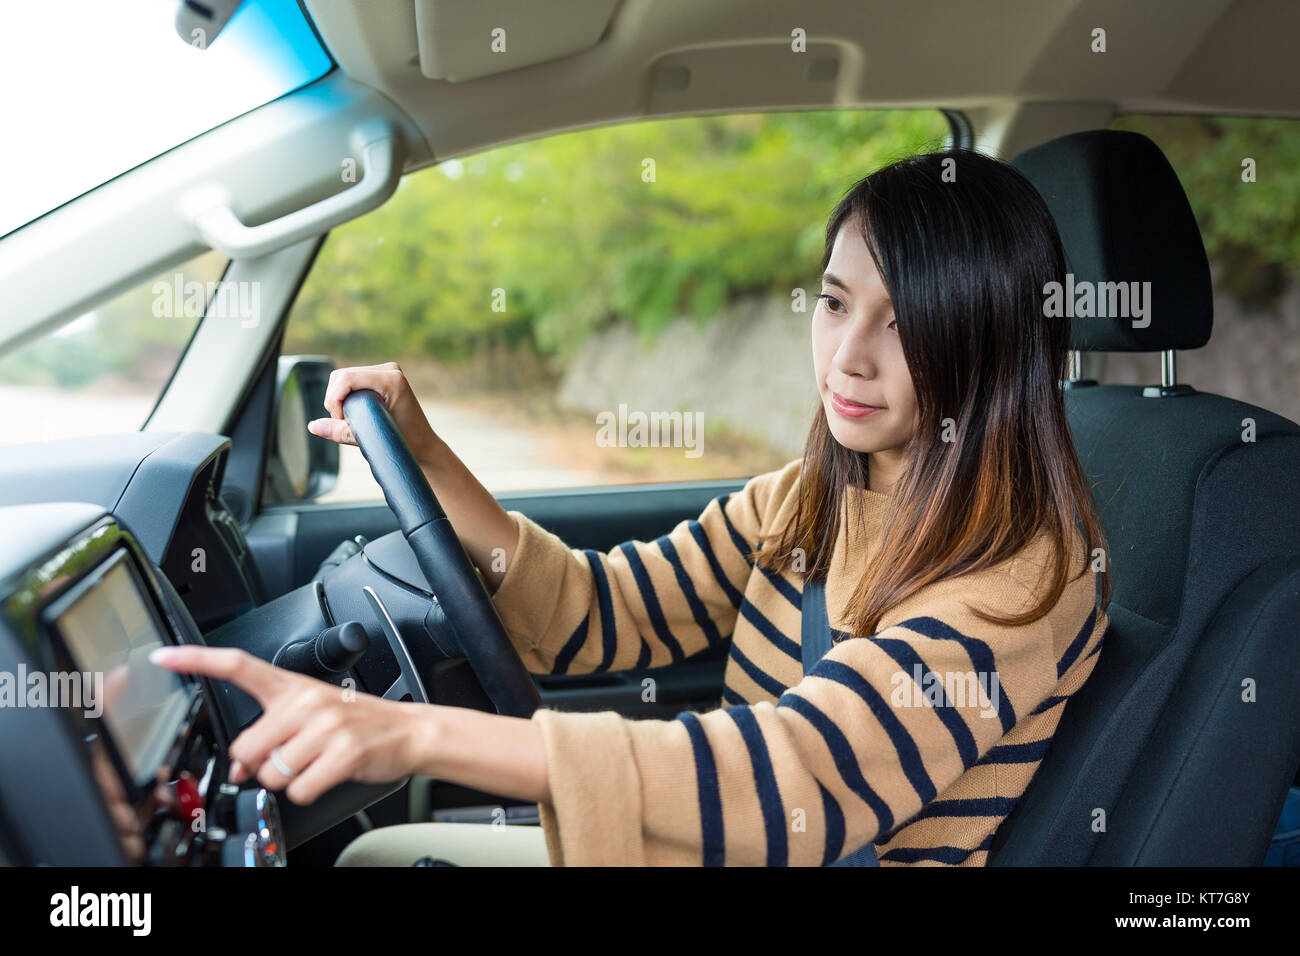 Woman using GPS system on car - Stock Image